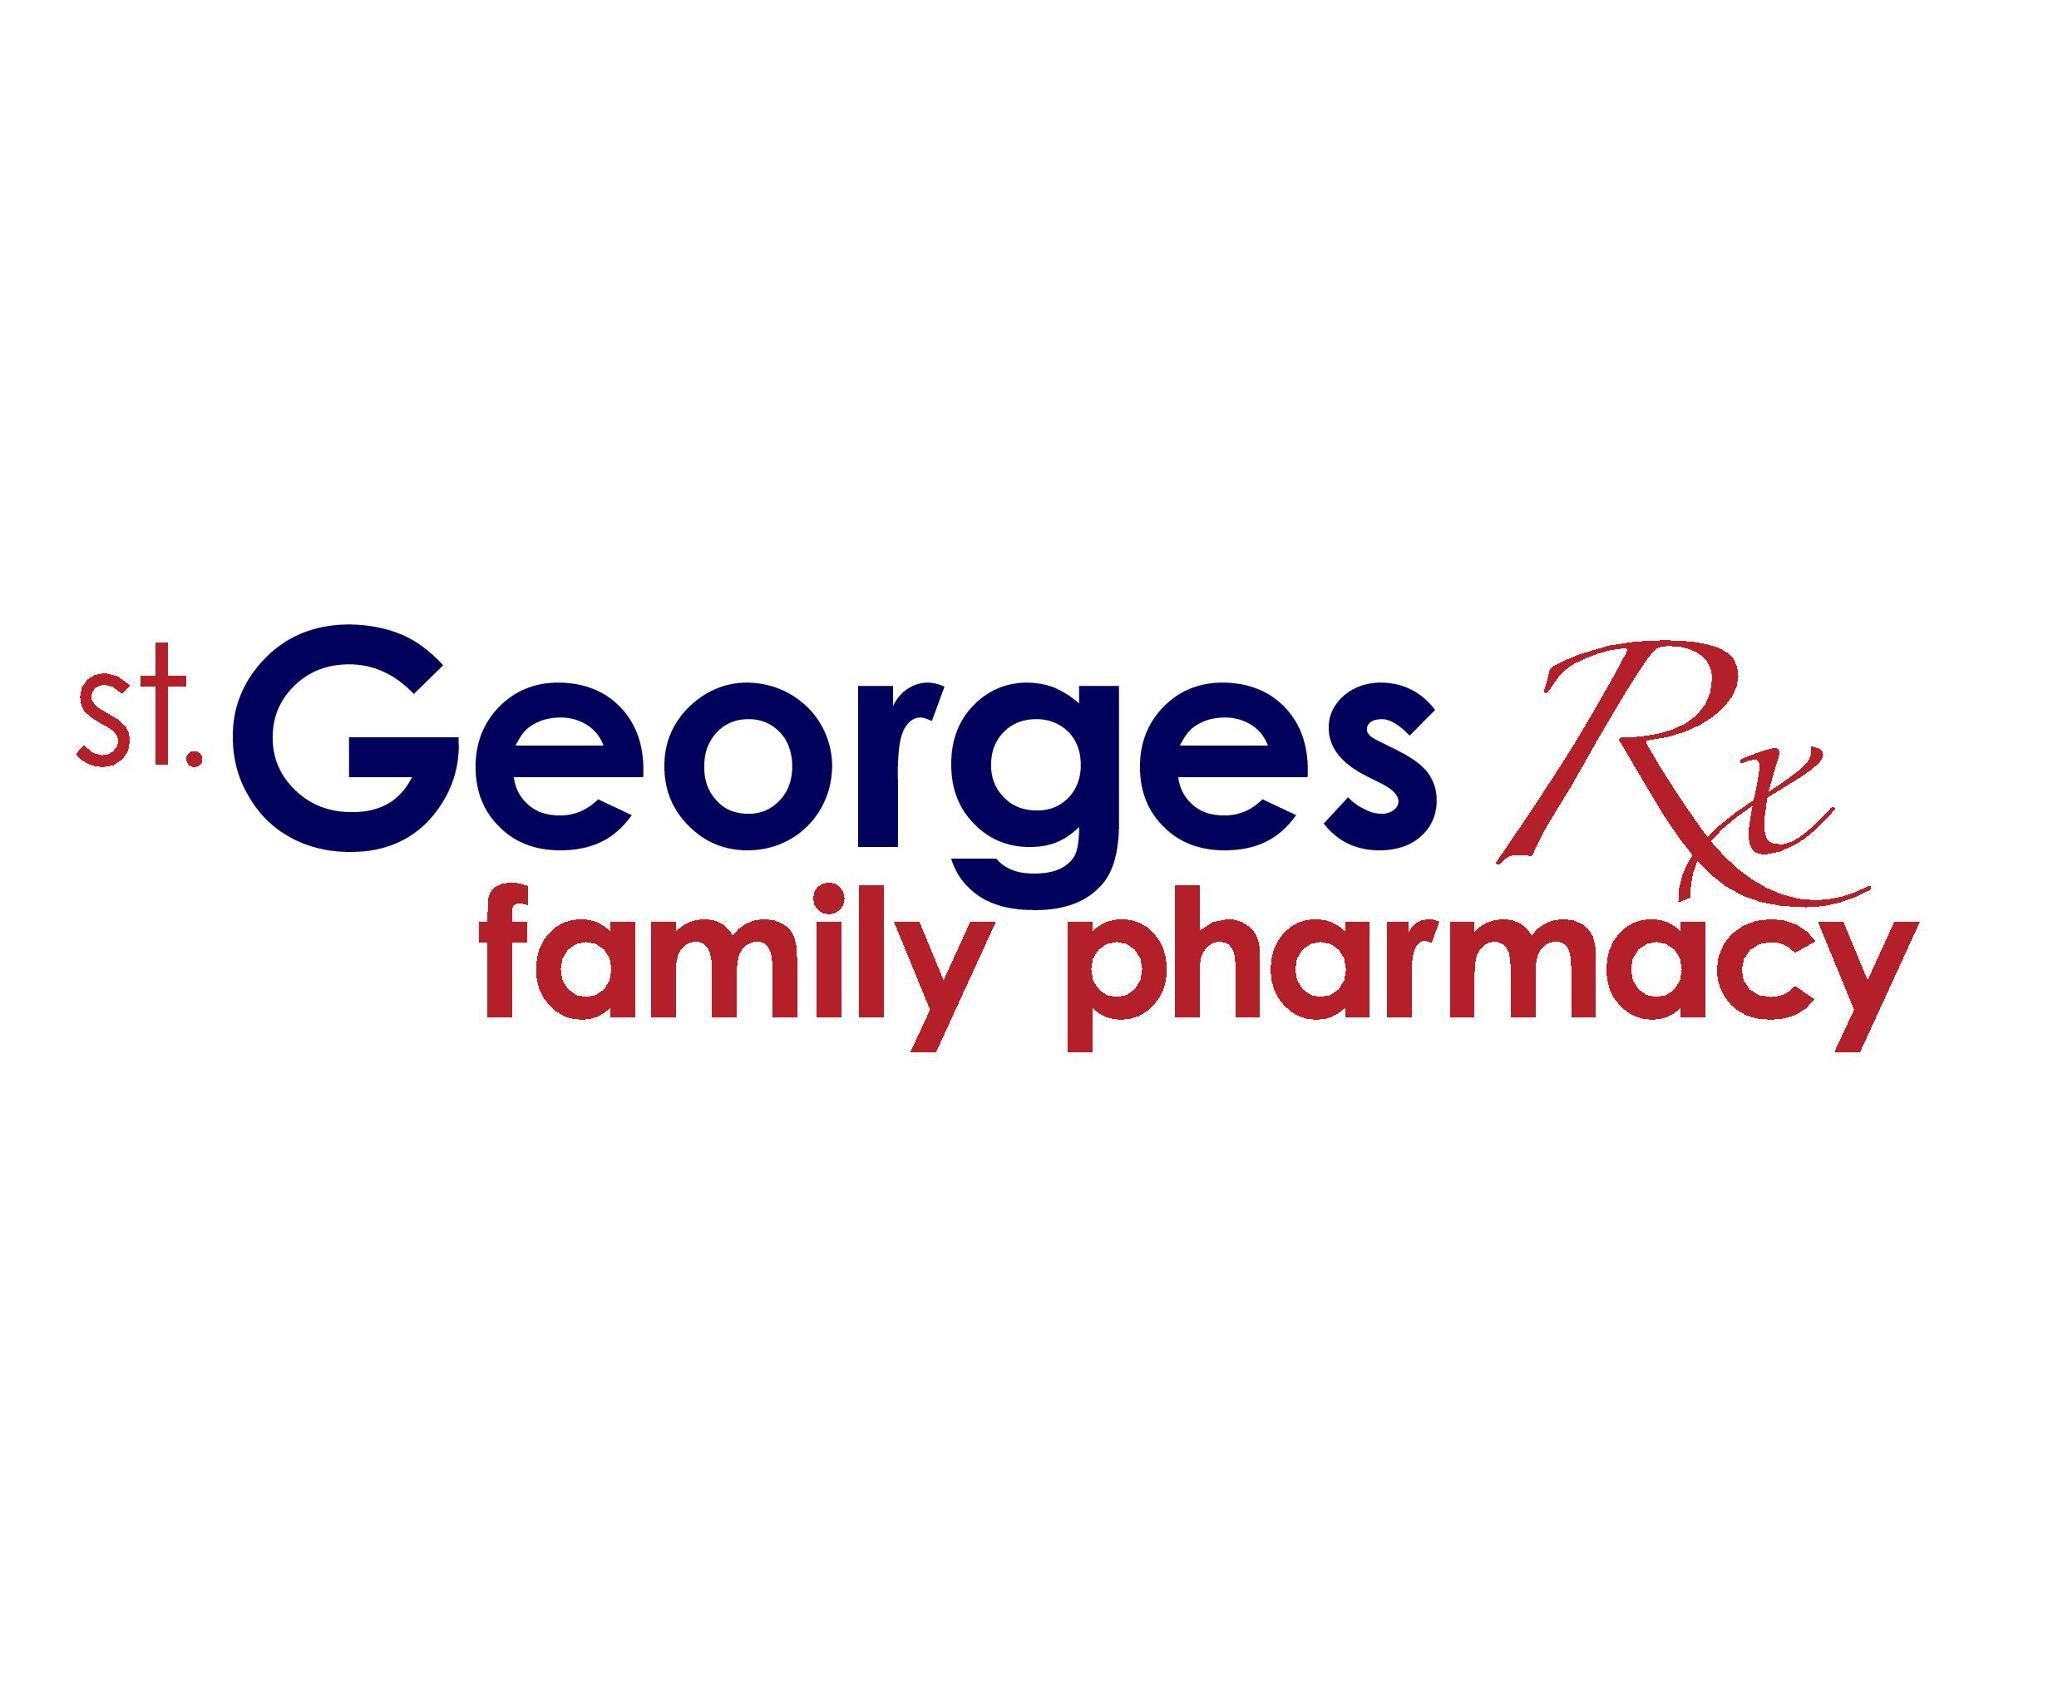 St. Georges Family Pharmacy image 4